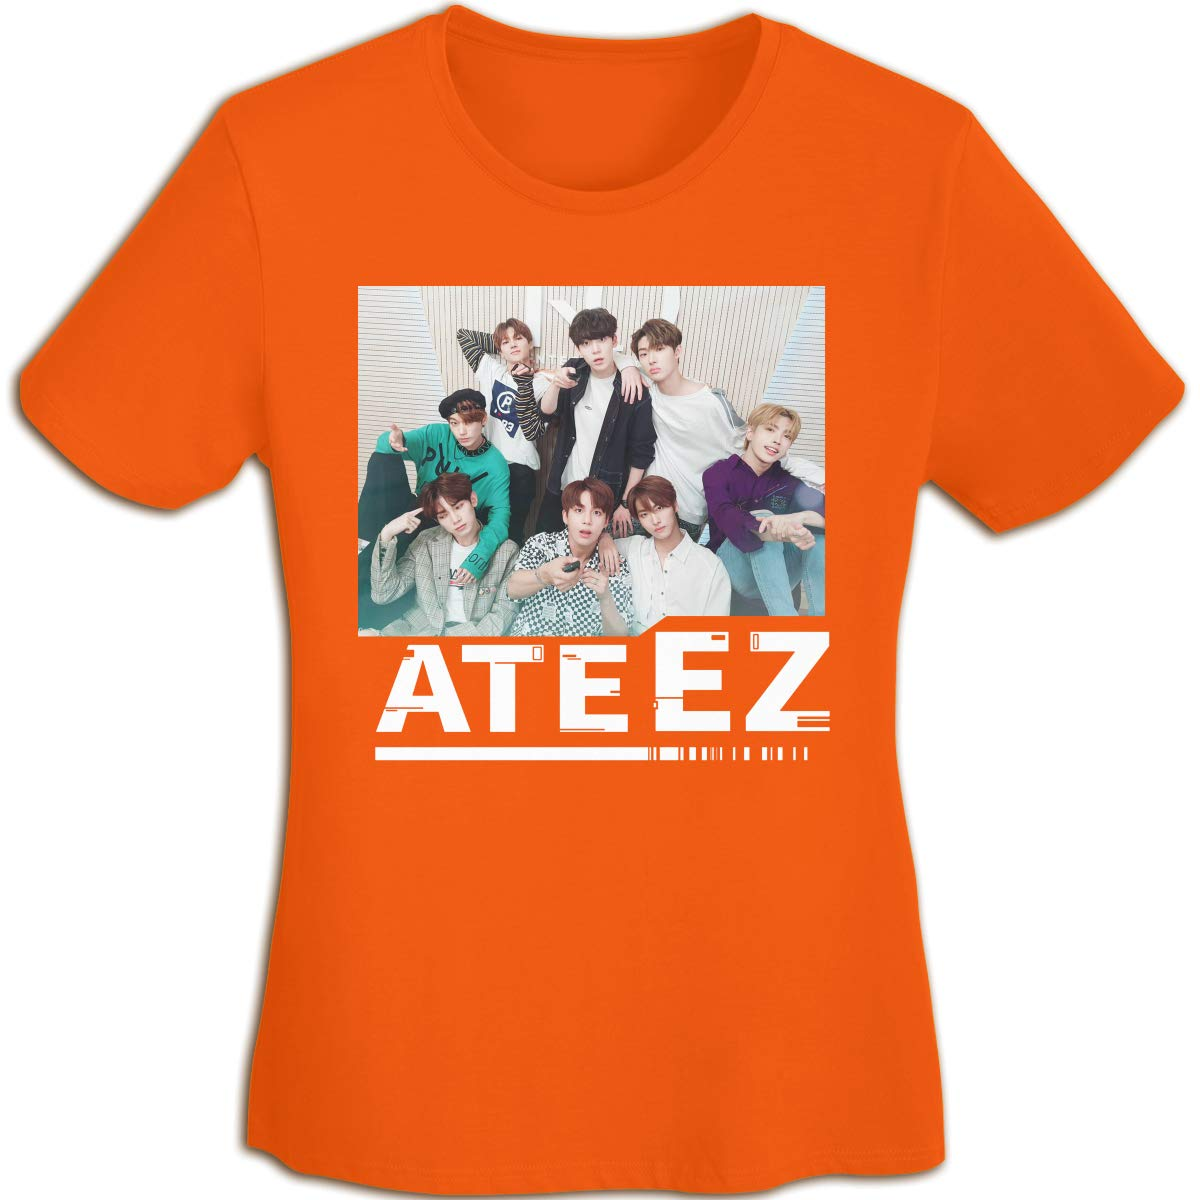 Troom Ateez Girls Loose Tees Fans Aided Shirt 3964